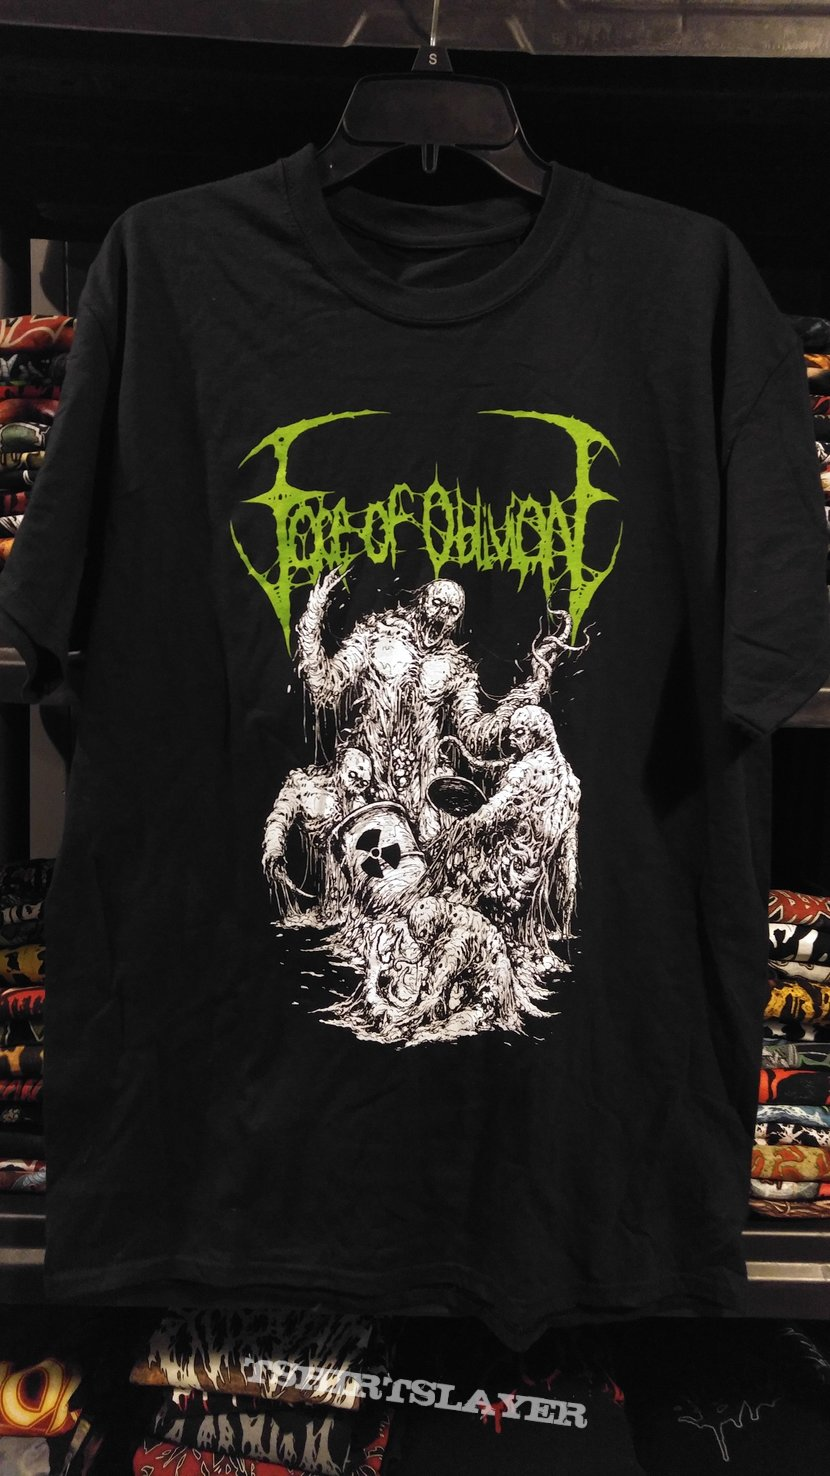 Morguelord's Face Of Oblivion, Face of Oblivion t-shirt